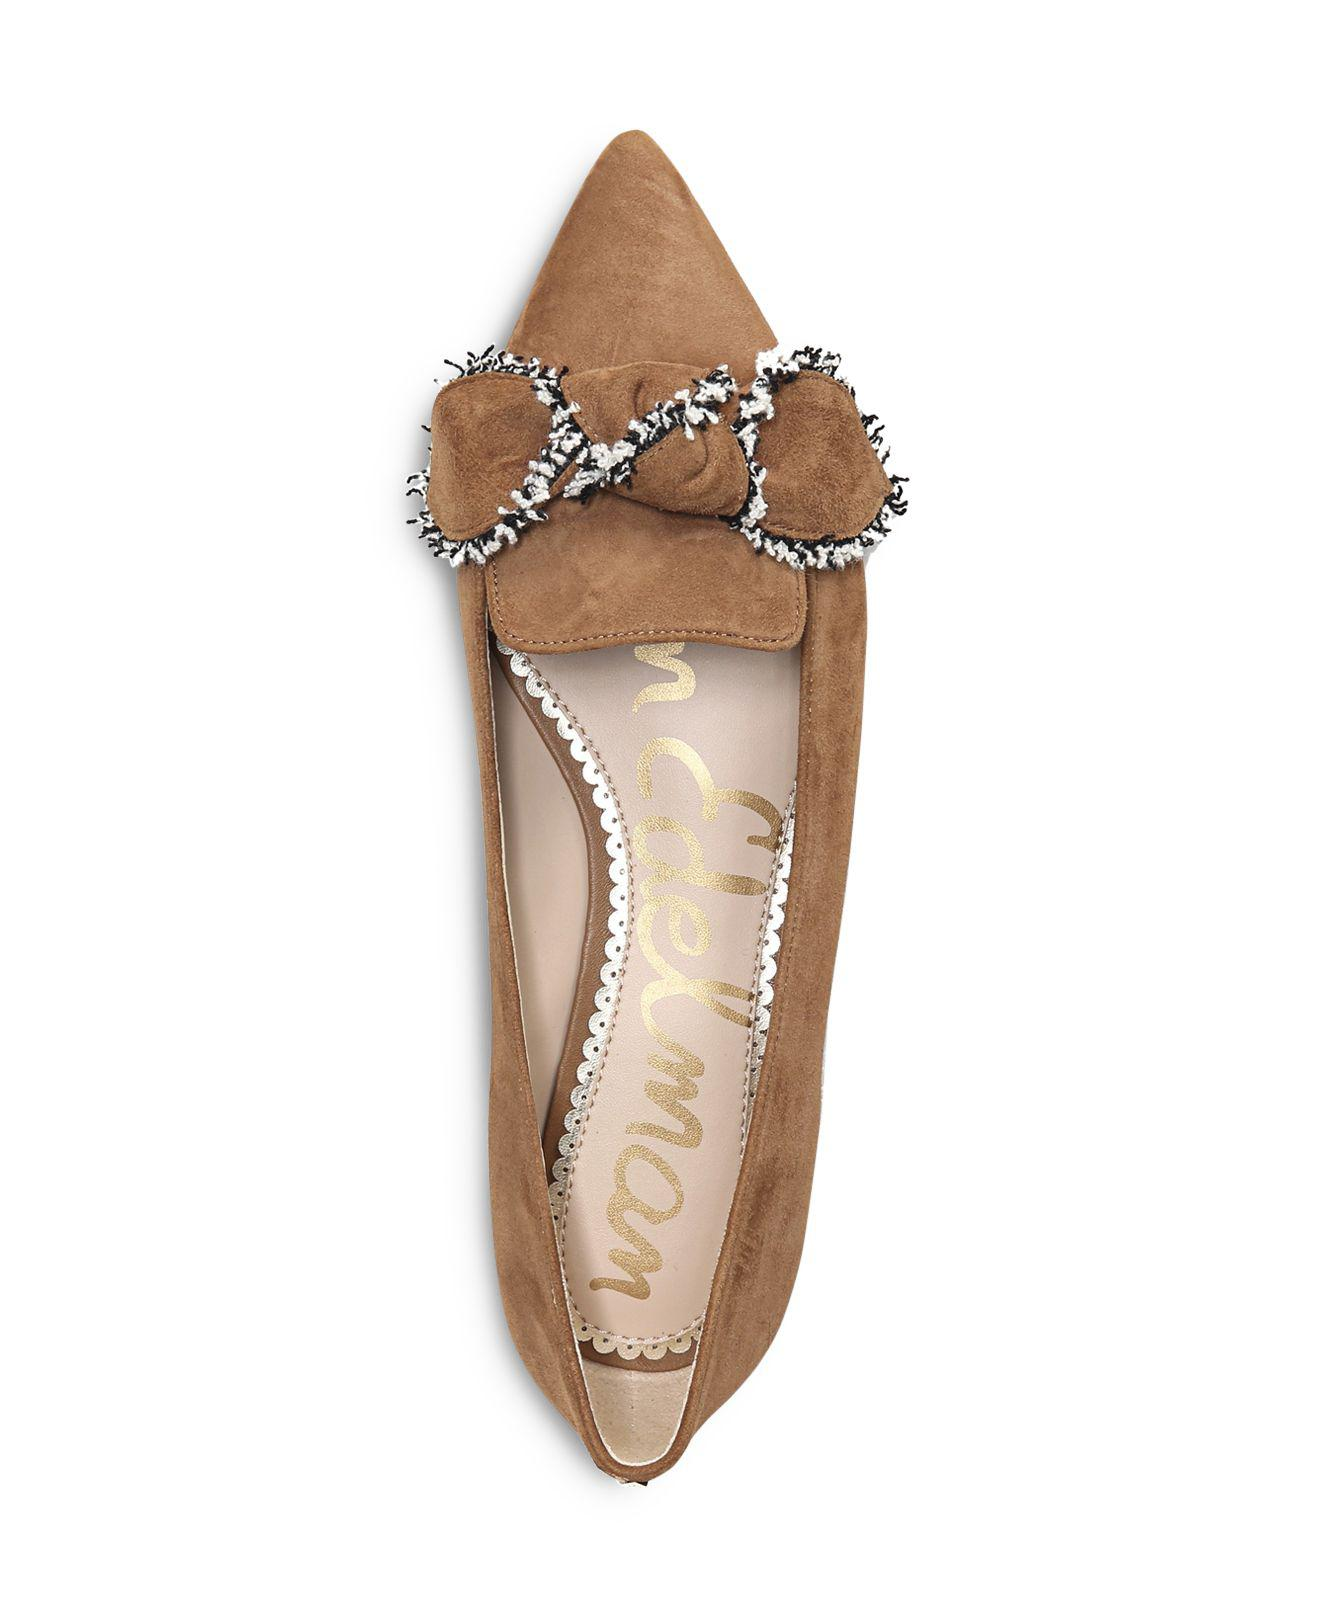 9d0140322 Lyst - Sam Edelman Rochester Suede Pointed Toe Bow Flats